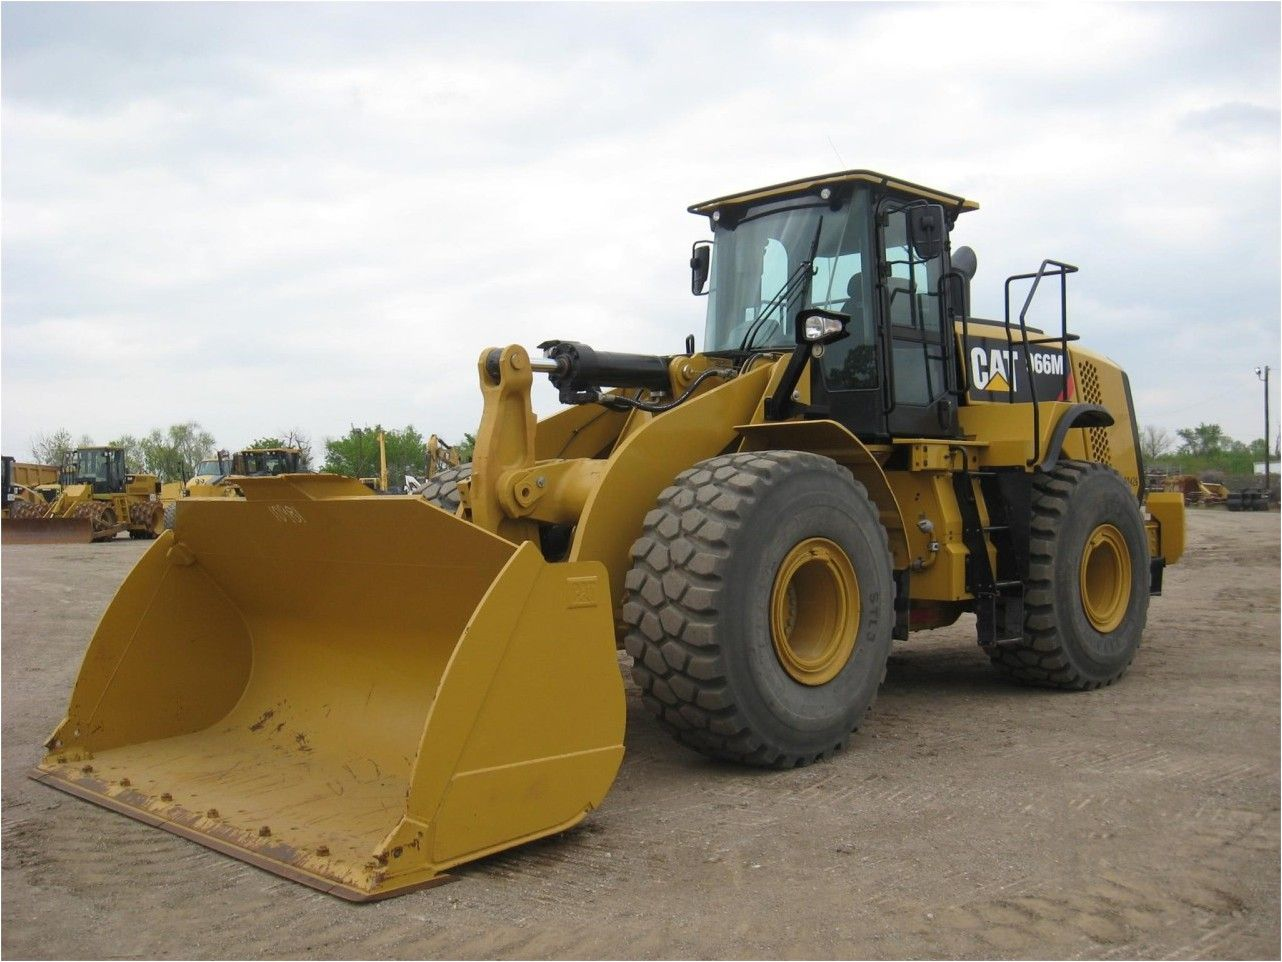 Our Featured Wheel Loader Is A 2014 Caterpillar 966m Erops A C Fusion Coupler Gp Bucket Forks Ride Control 311 Hrs We Have Great Selection Of Whee Tekne